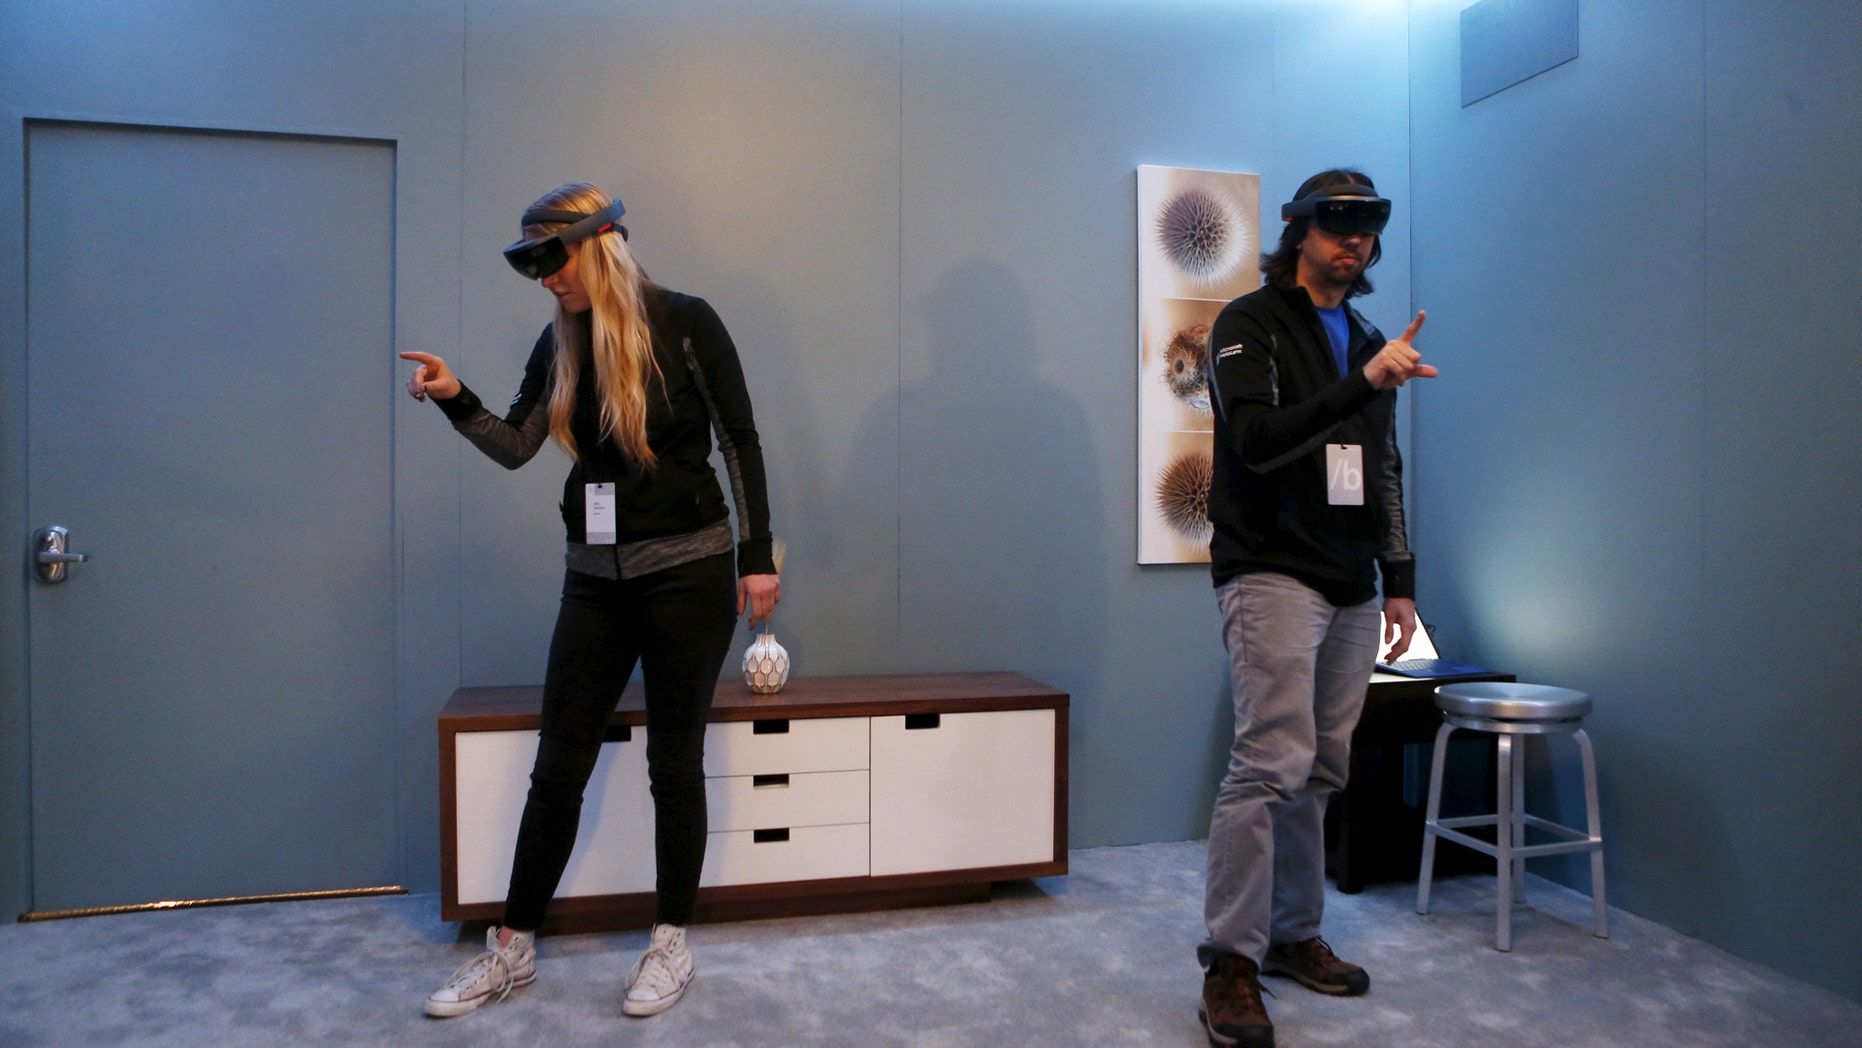 File photo: Microsoft employees demonstrate HoloLens during the Microsoft Build 2016 Developers Conference in San Francisco, California March 30, 2016. (REUTERS/Beck Diefenbach)